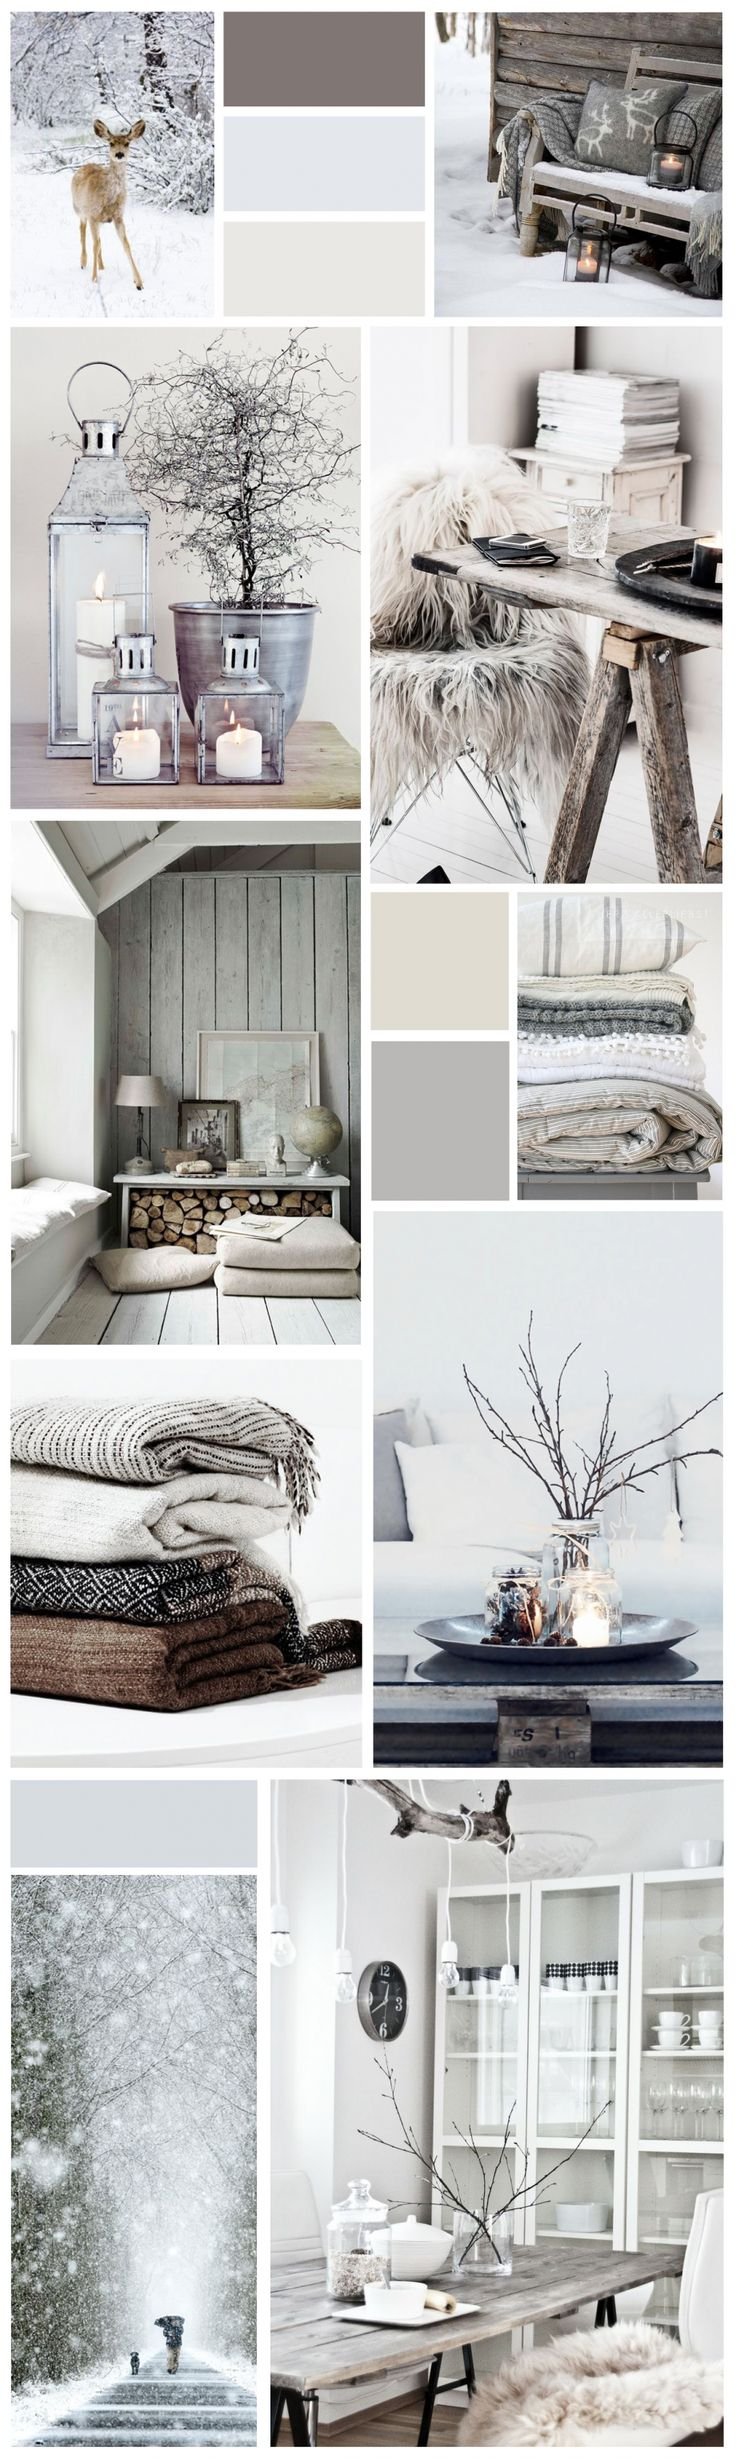 Winter MoodBoard #MoodBoardIdeas #MoodBoardDesign #MoodBoardFashion